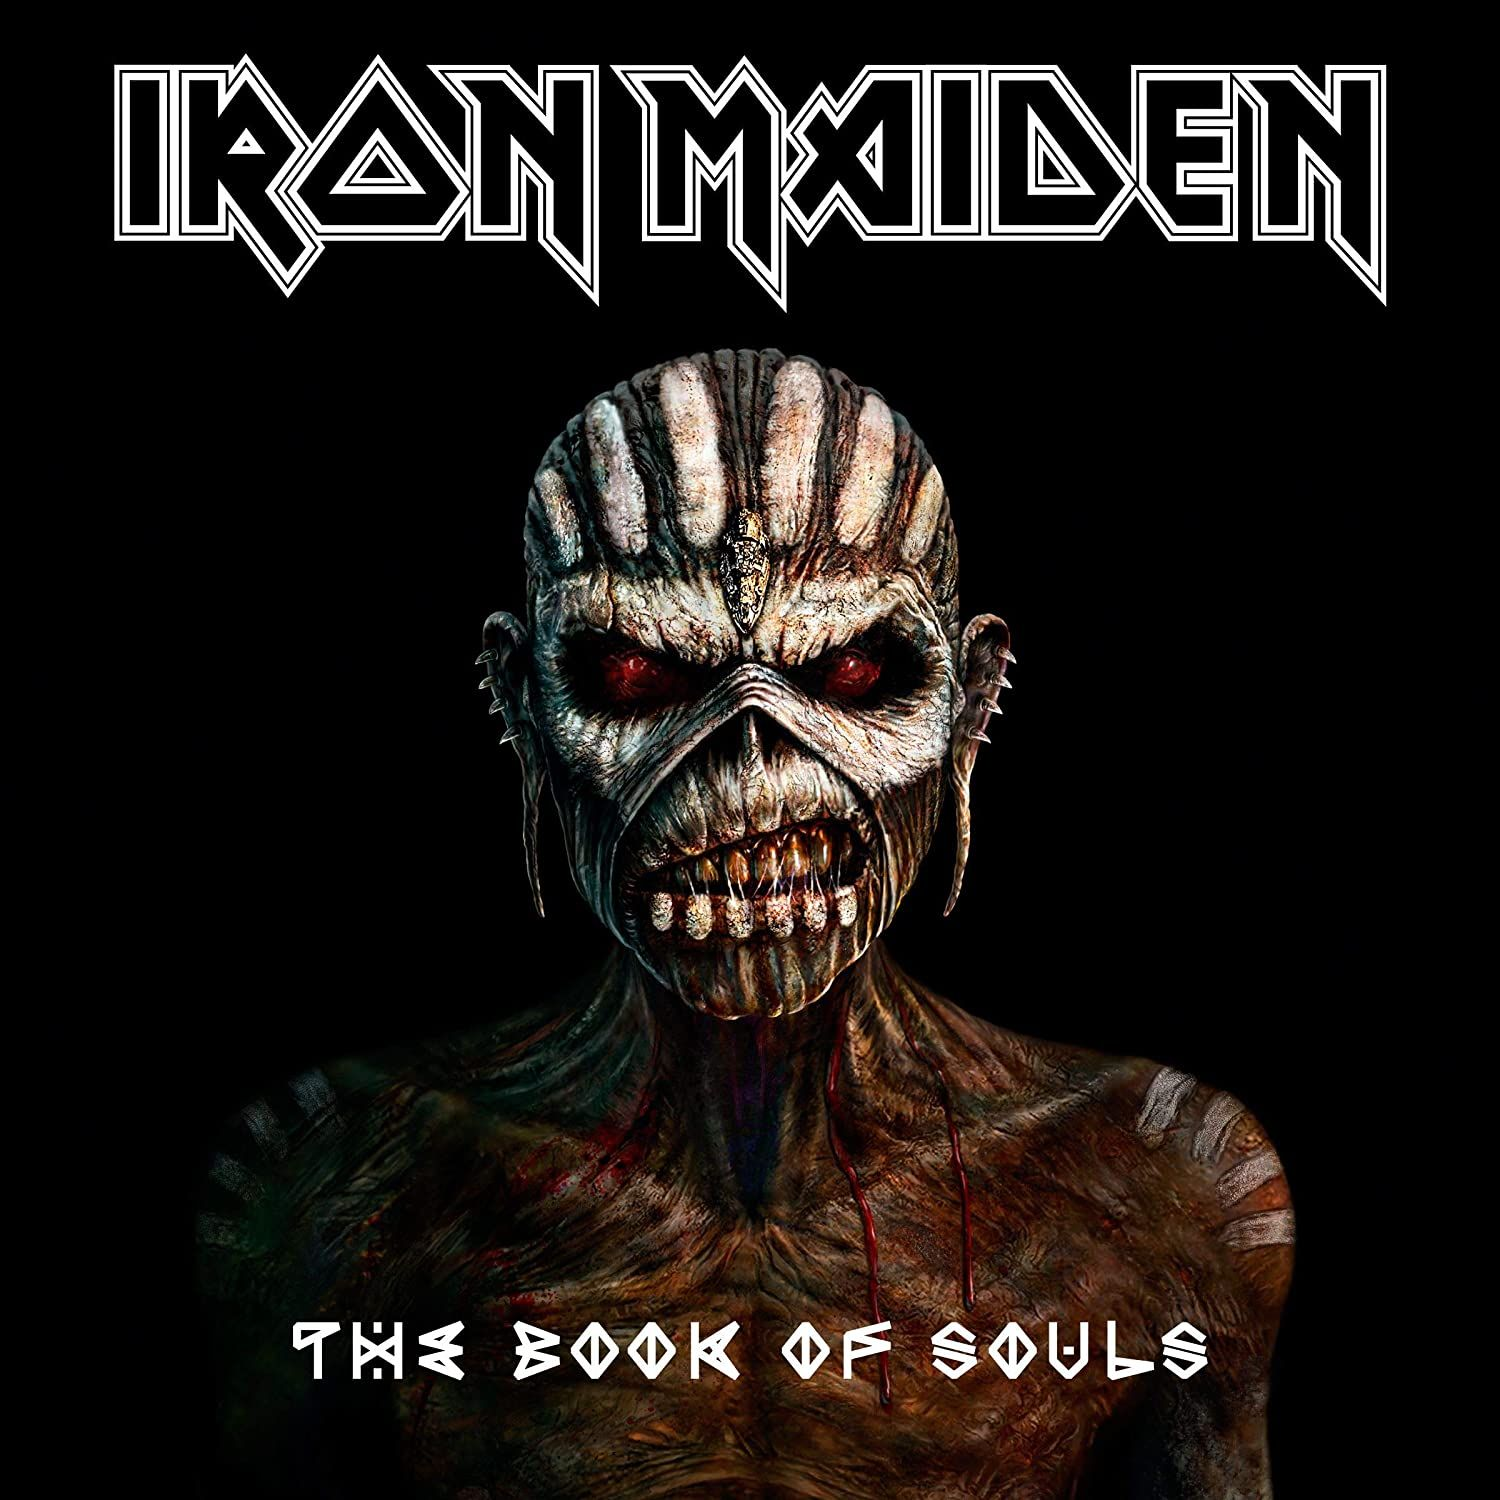 Iron Maiden The Book Of Souls 2 x CD SET